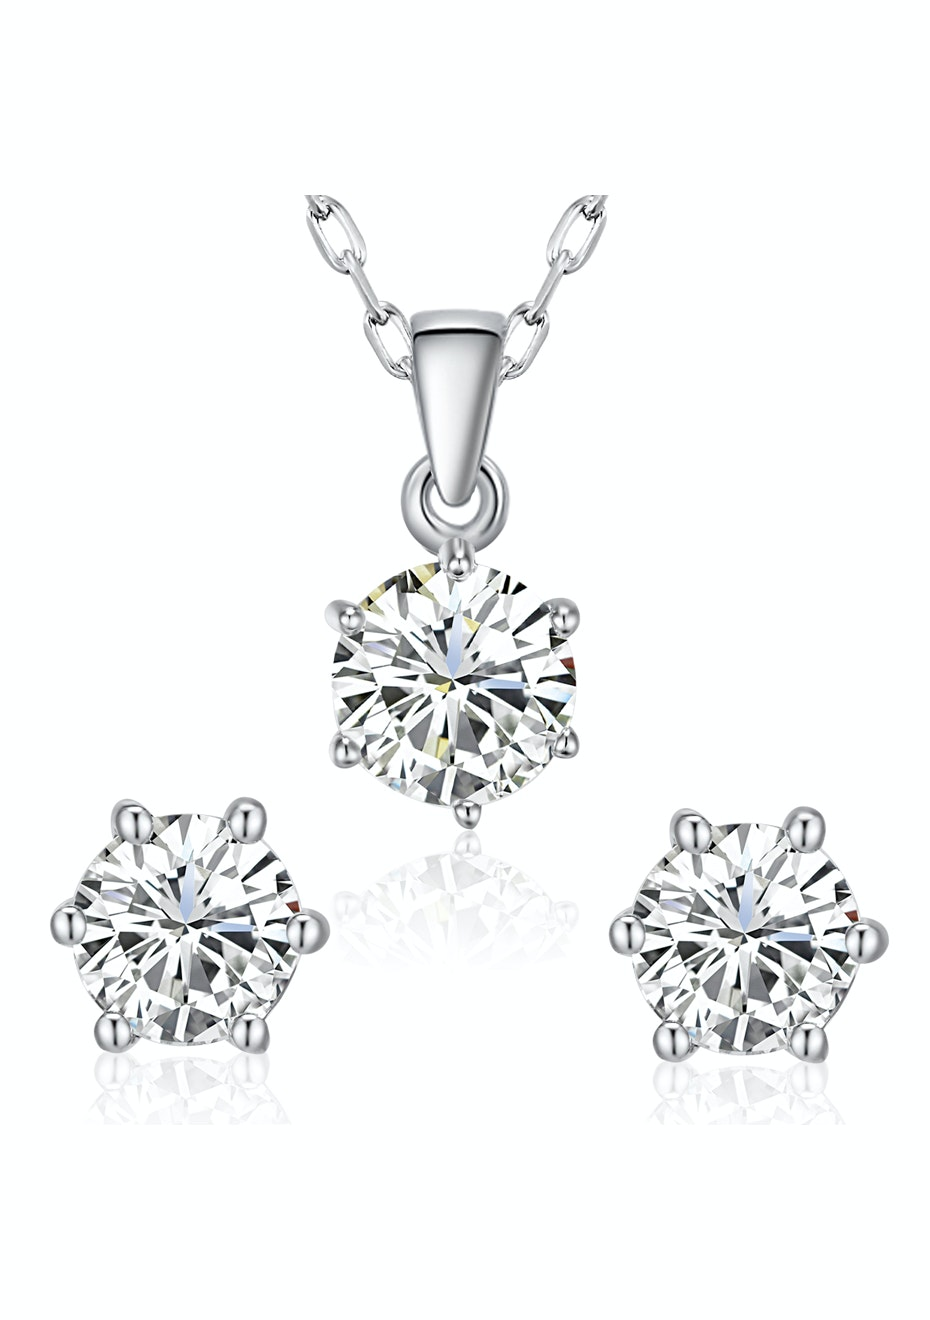 Buckingham Matching Set Embellished with Crystals from Swarovski